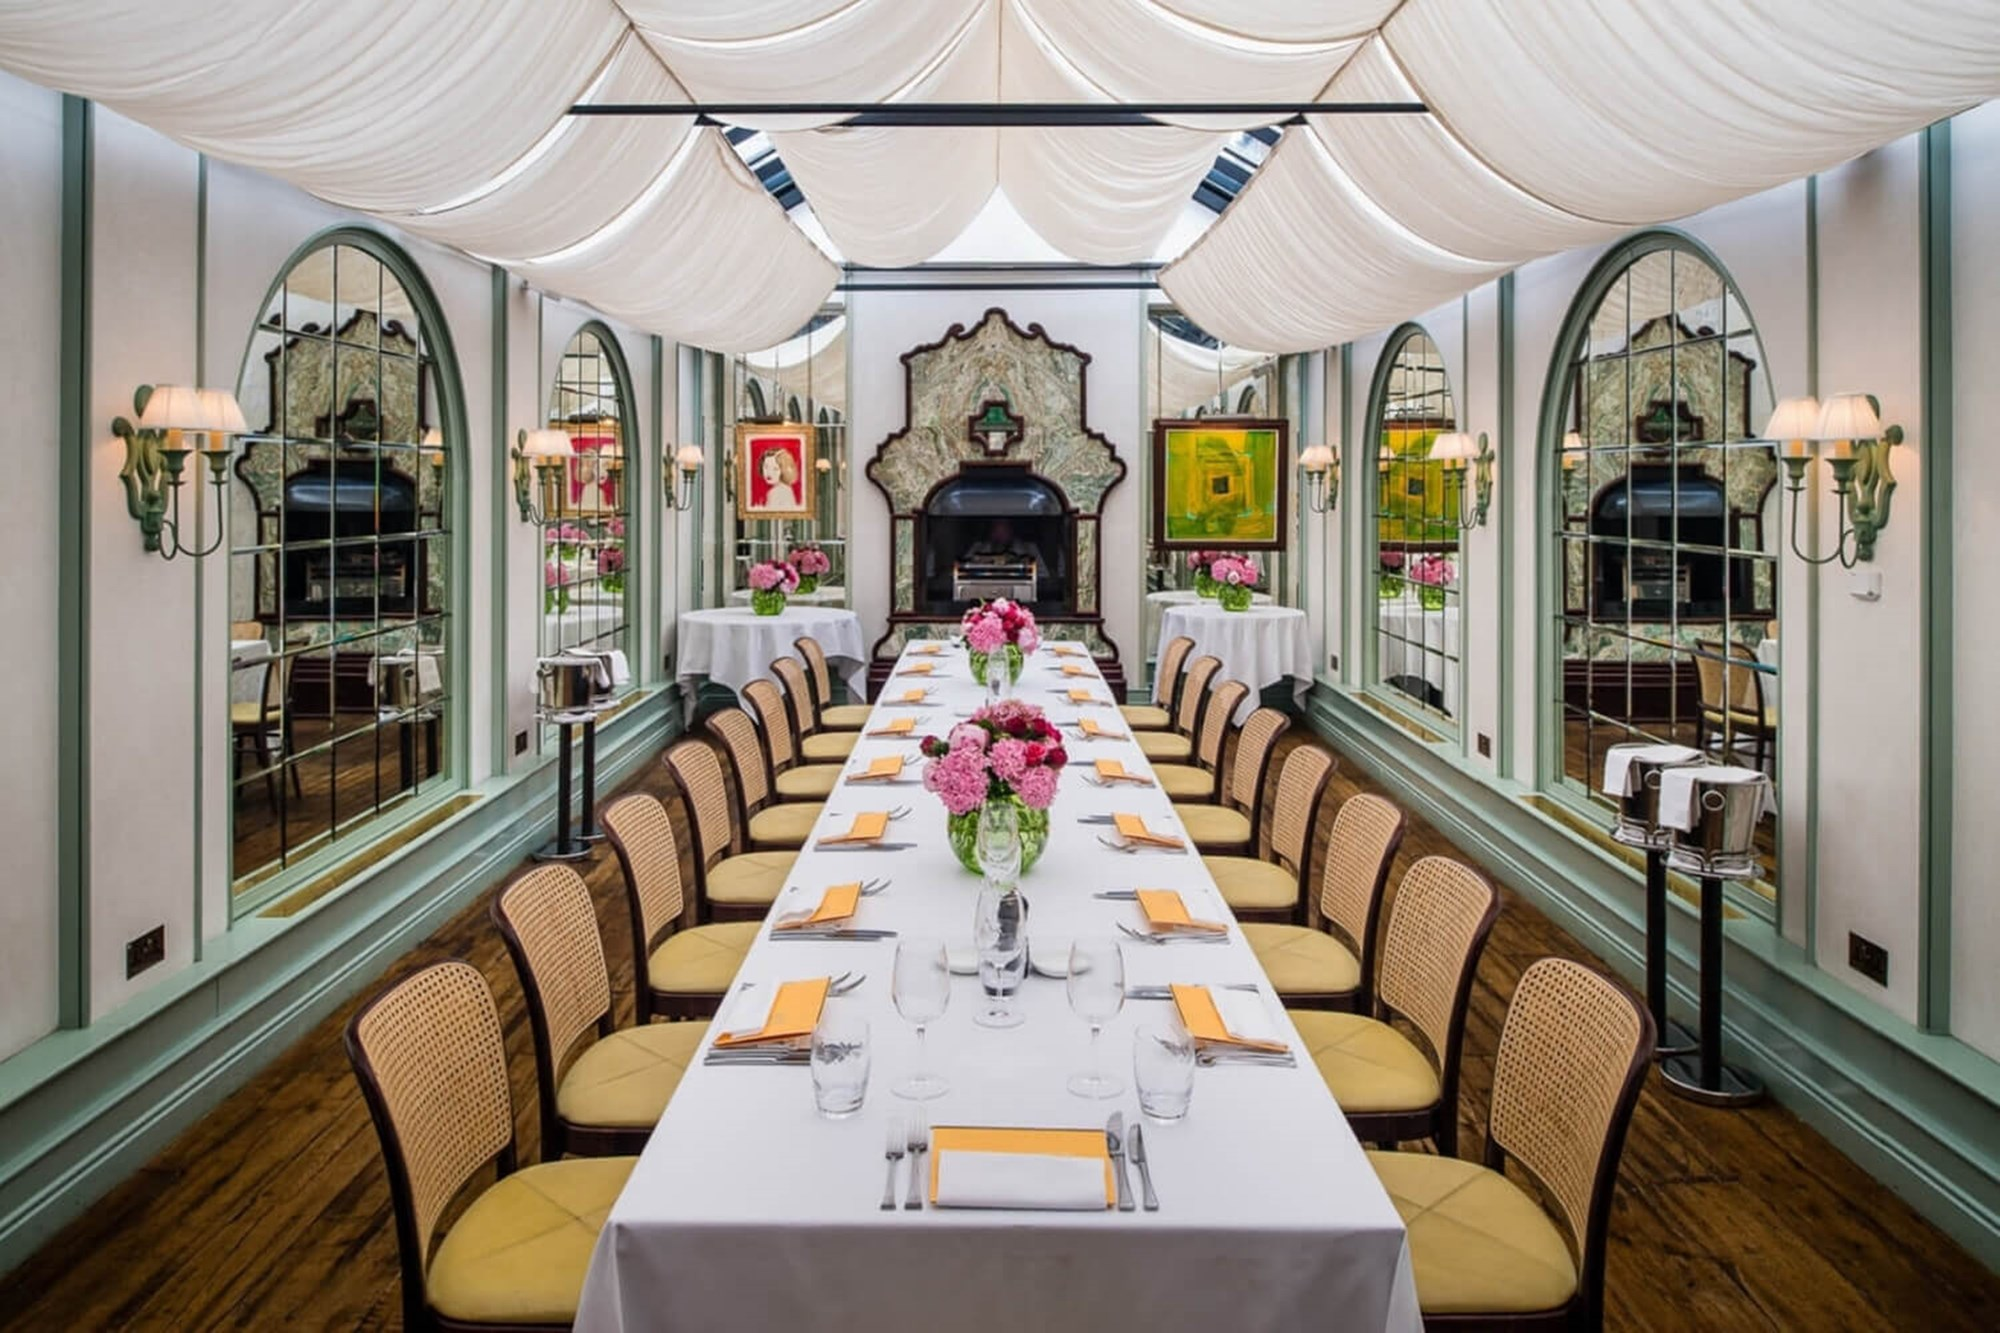 Daphne's private dining room is ideal for birthday celebrations